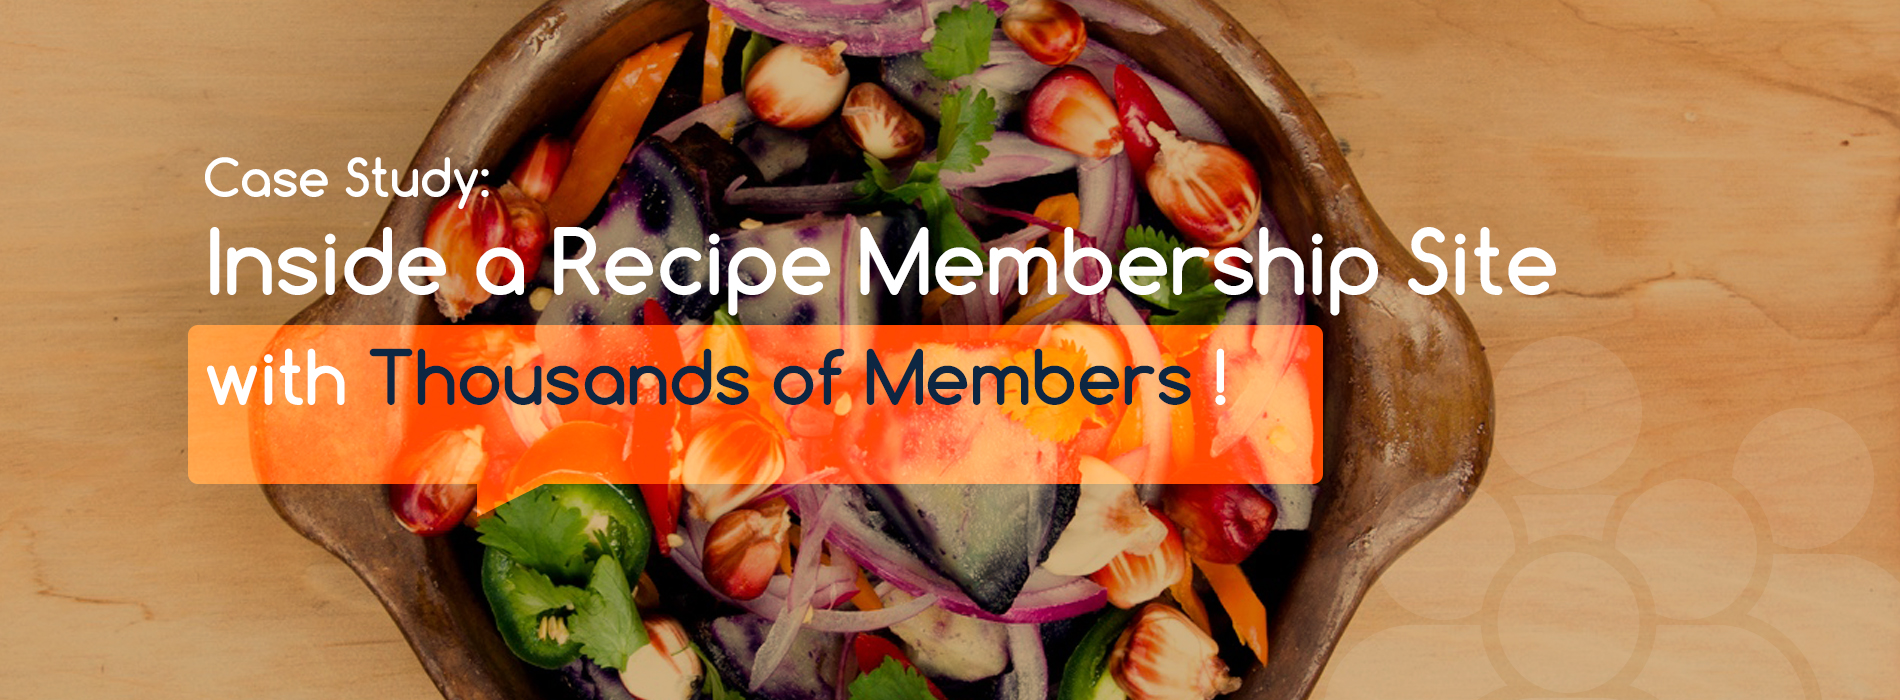 Inside a Recipe Membership Site